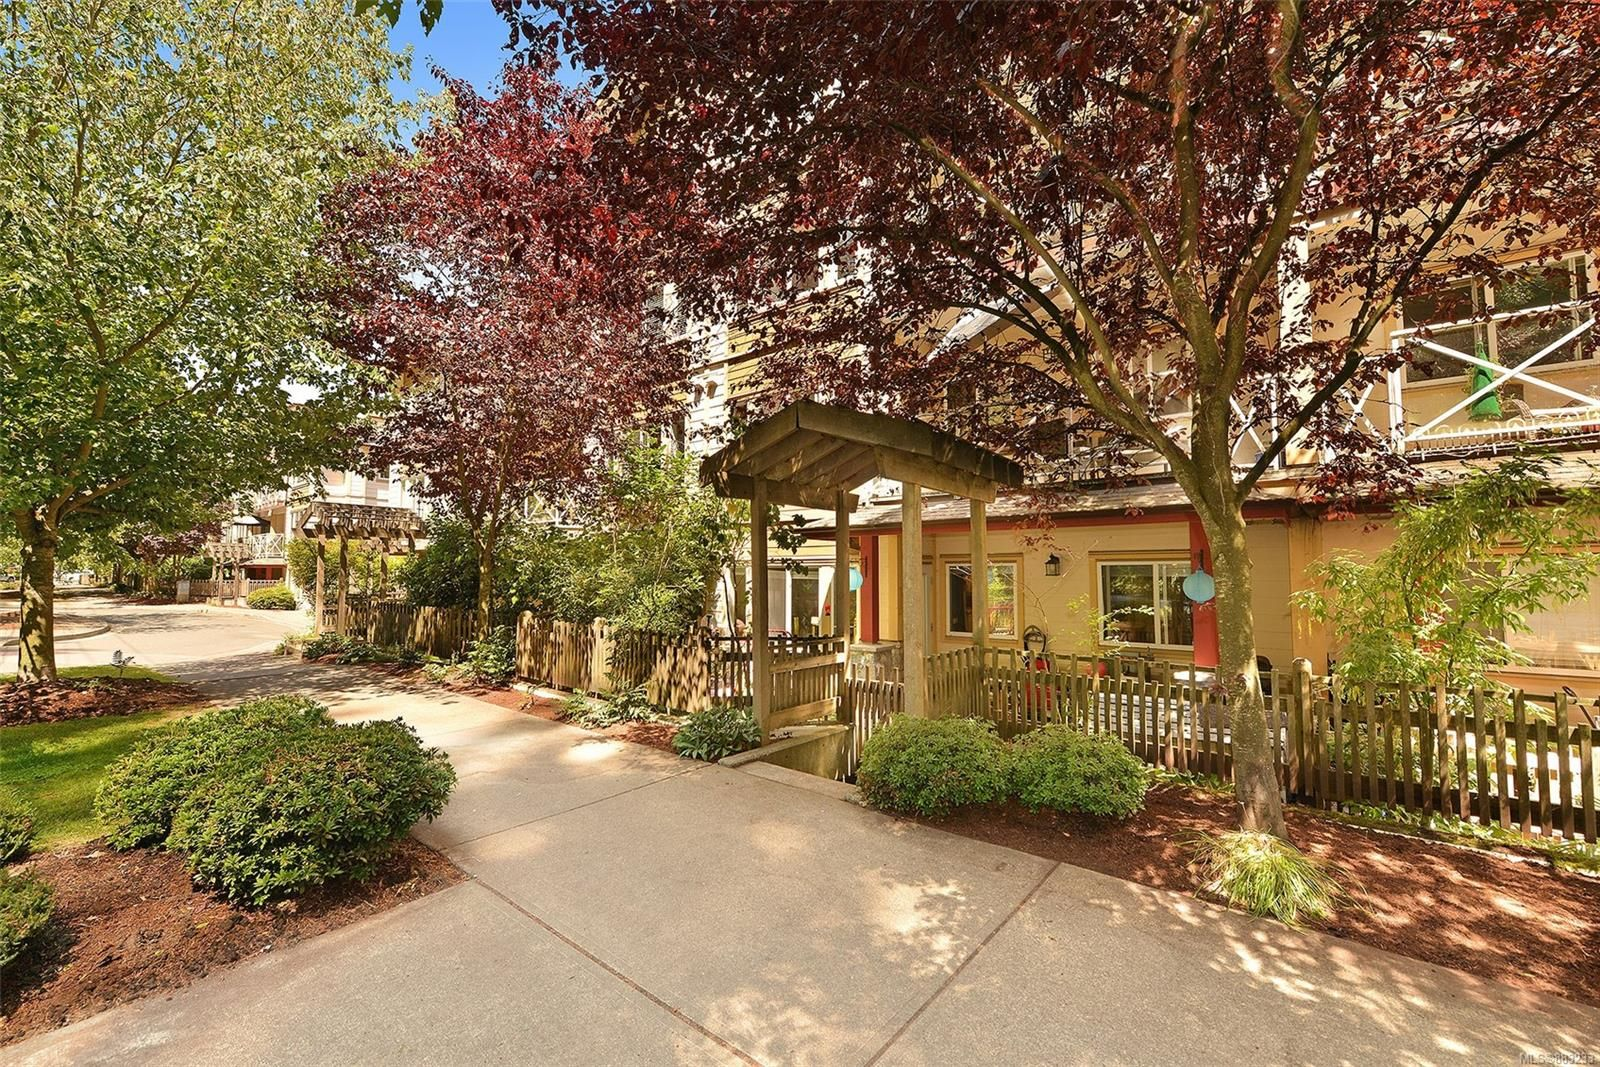 Main Photo: 105 360 GOLDSTREAM Ave in : Co Colwood Corners Condo for sale (Colwood)  : MLS®# 883233